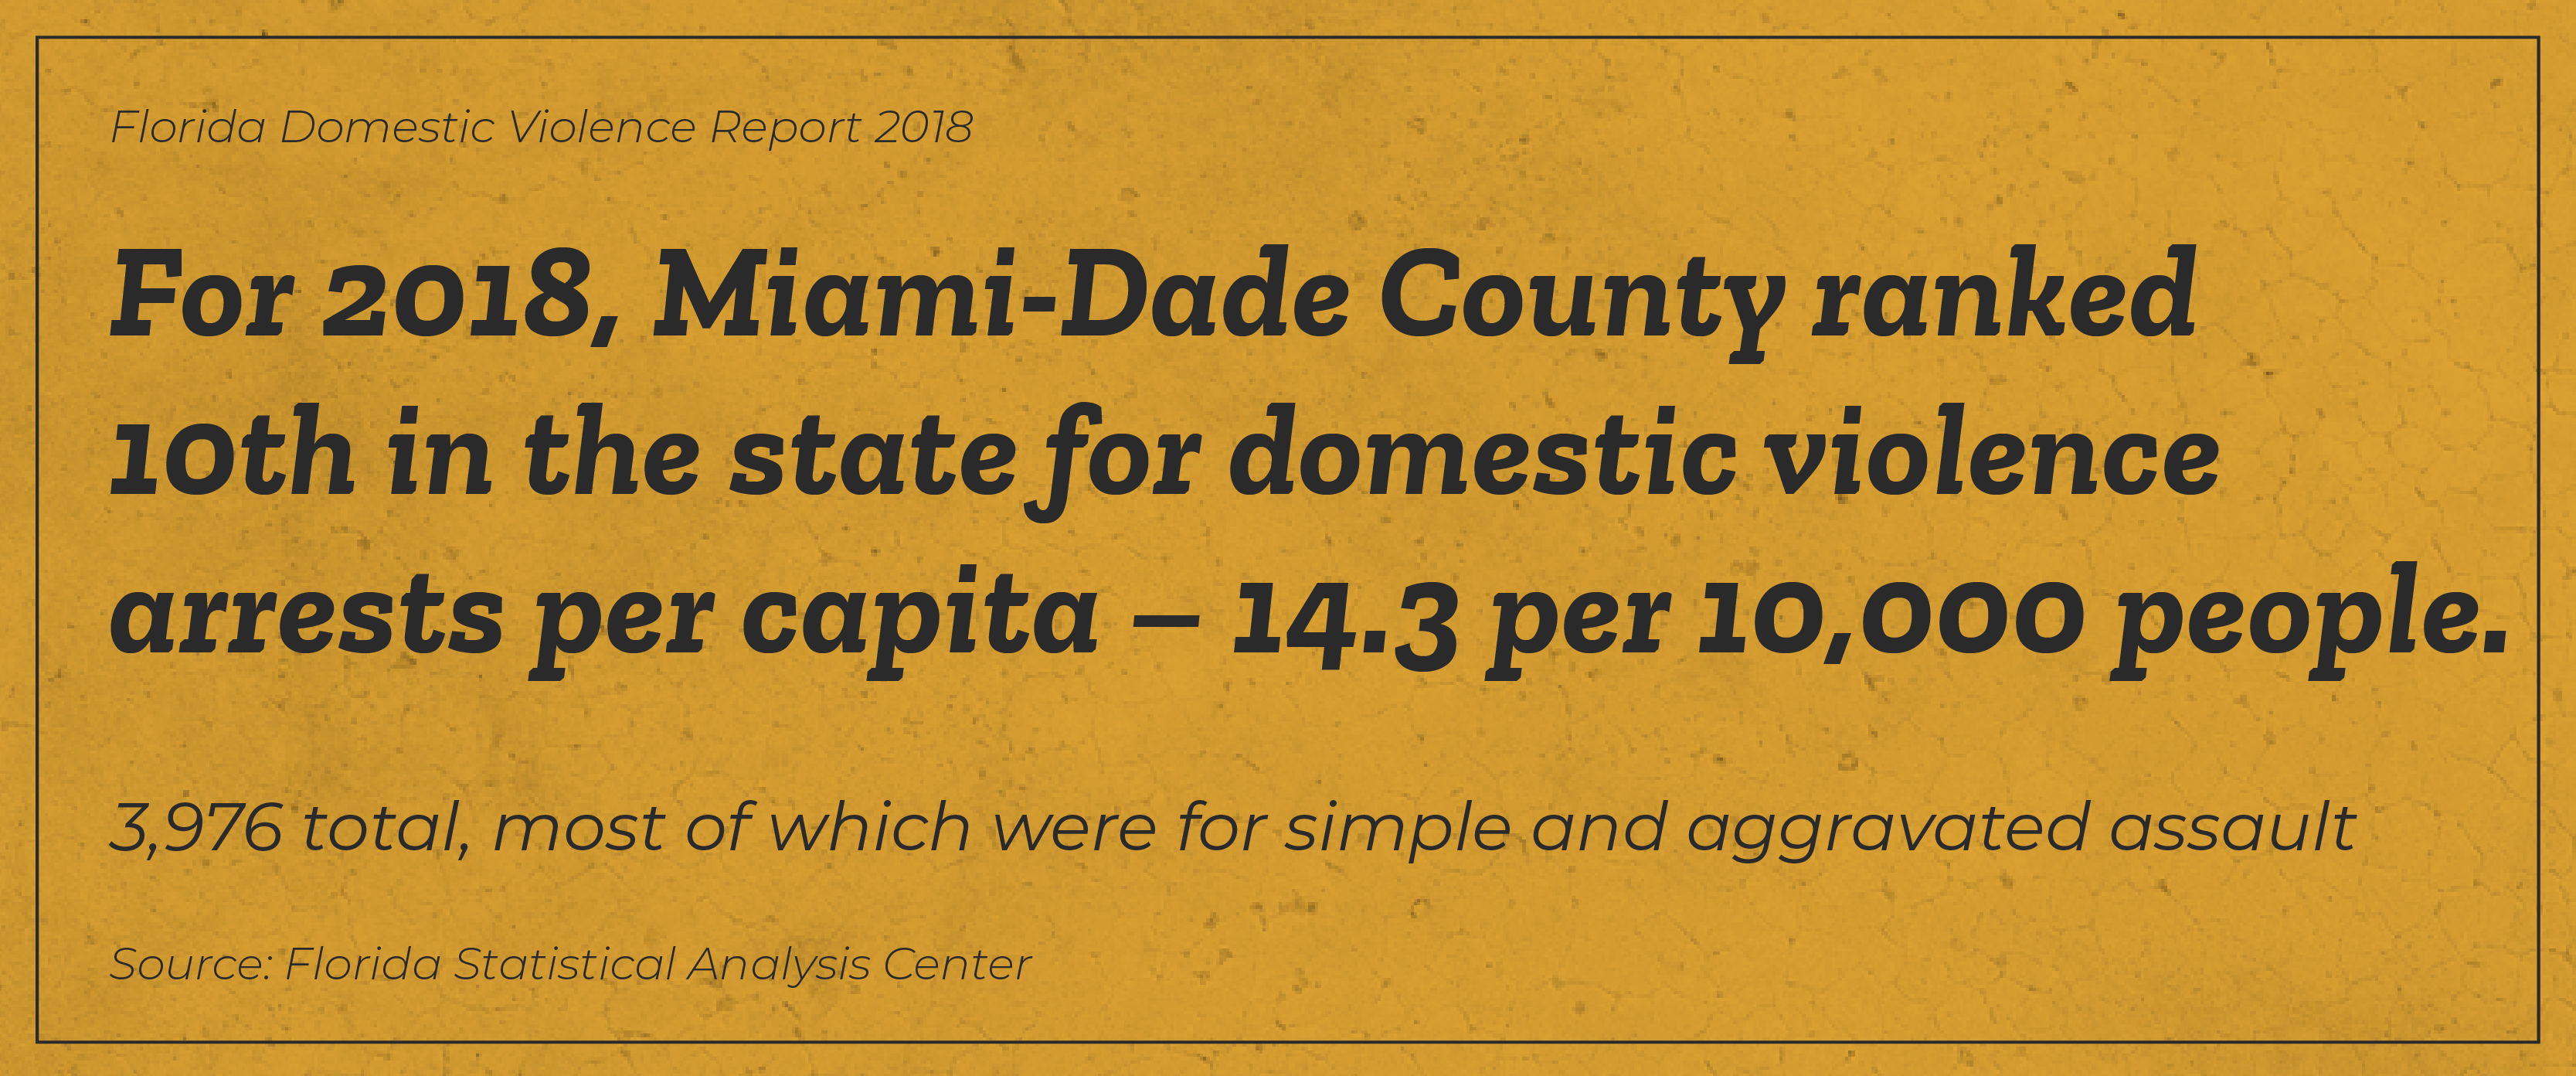 miami-dade-10th-ranked-arrests-per-capita